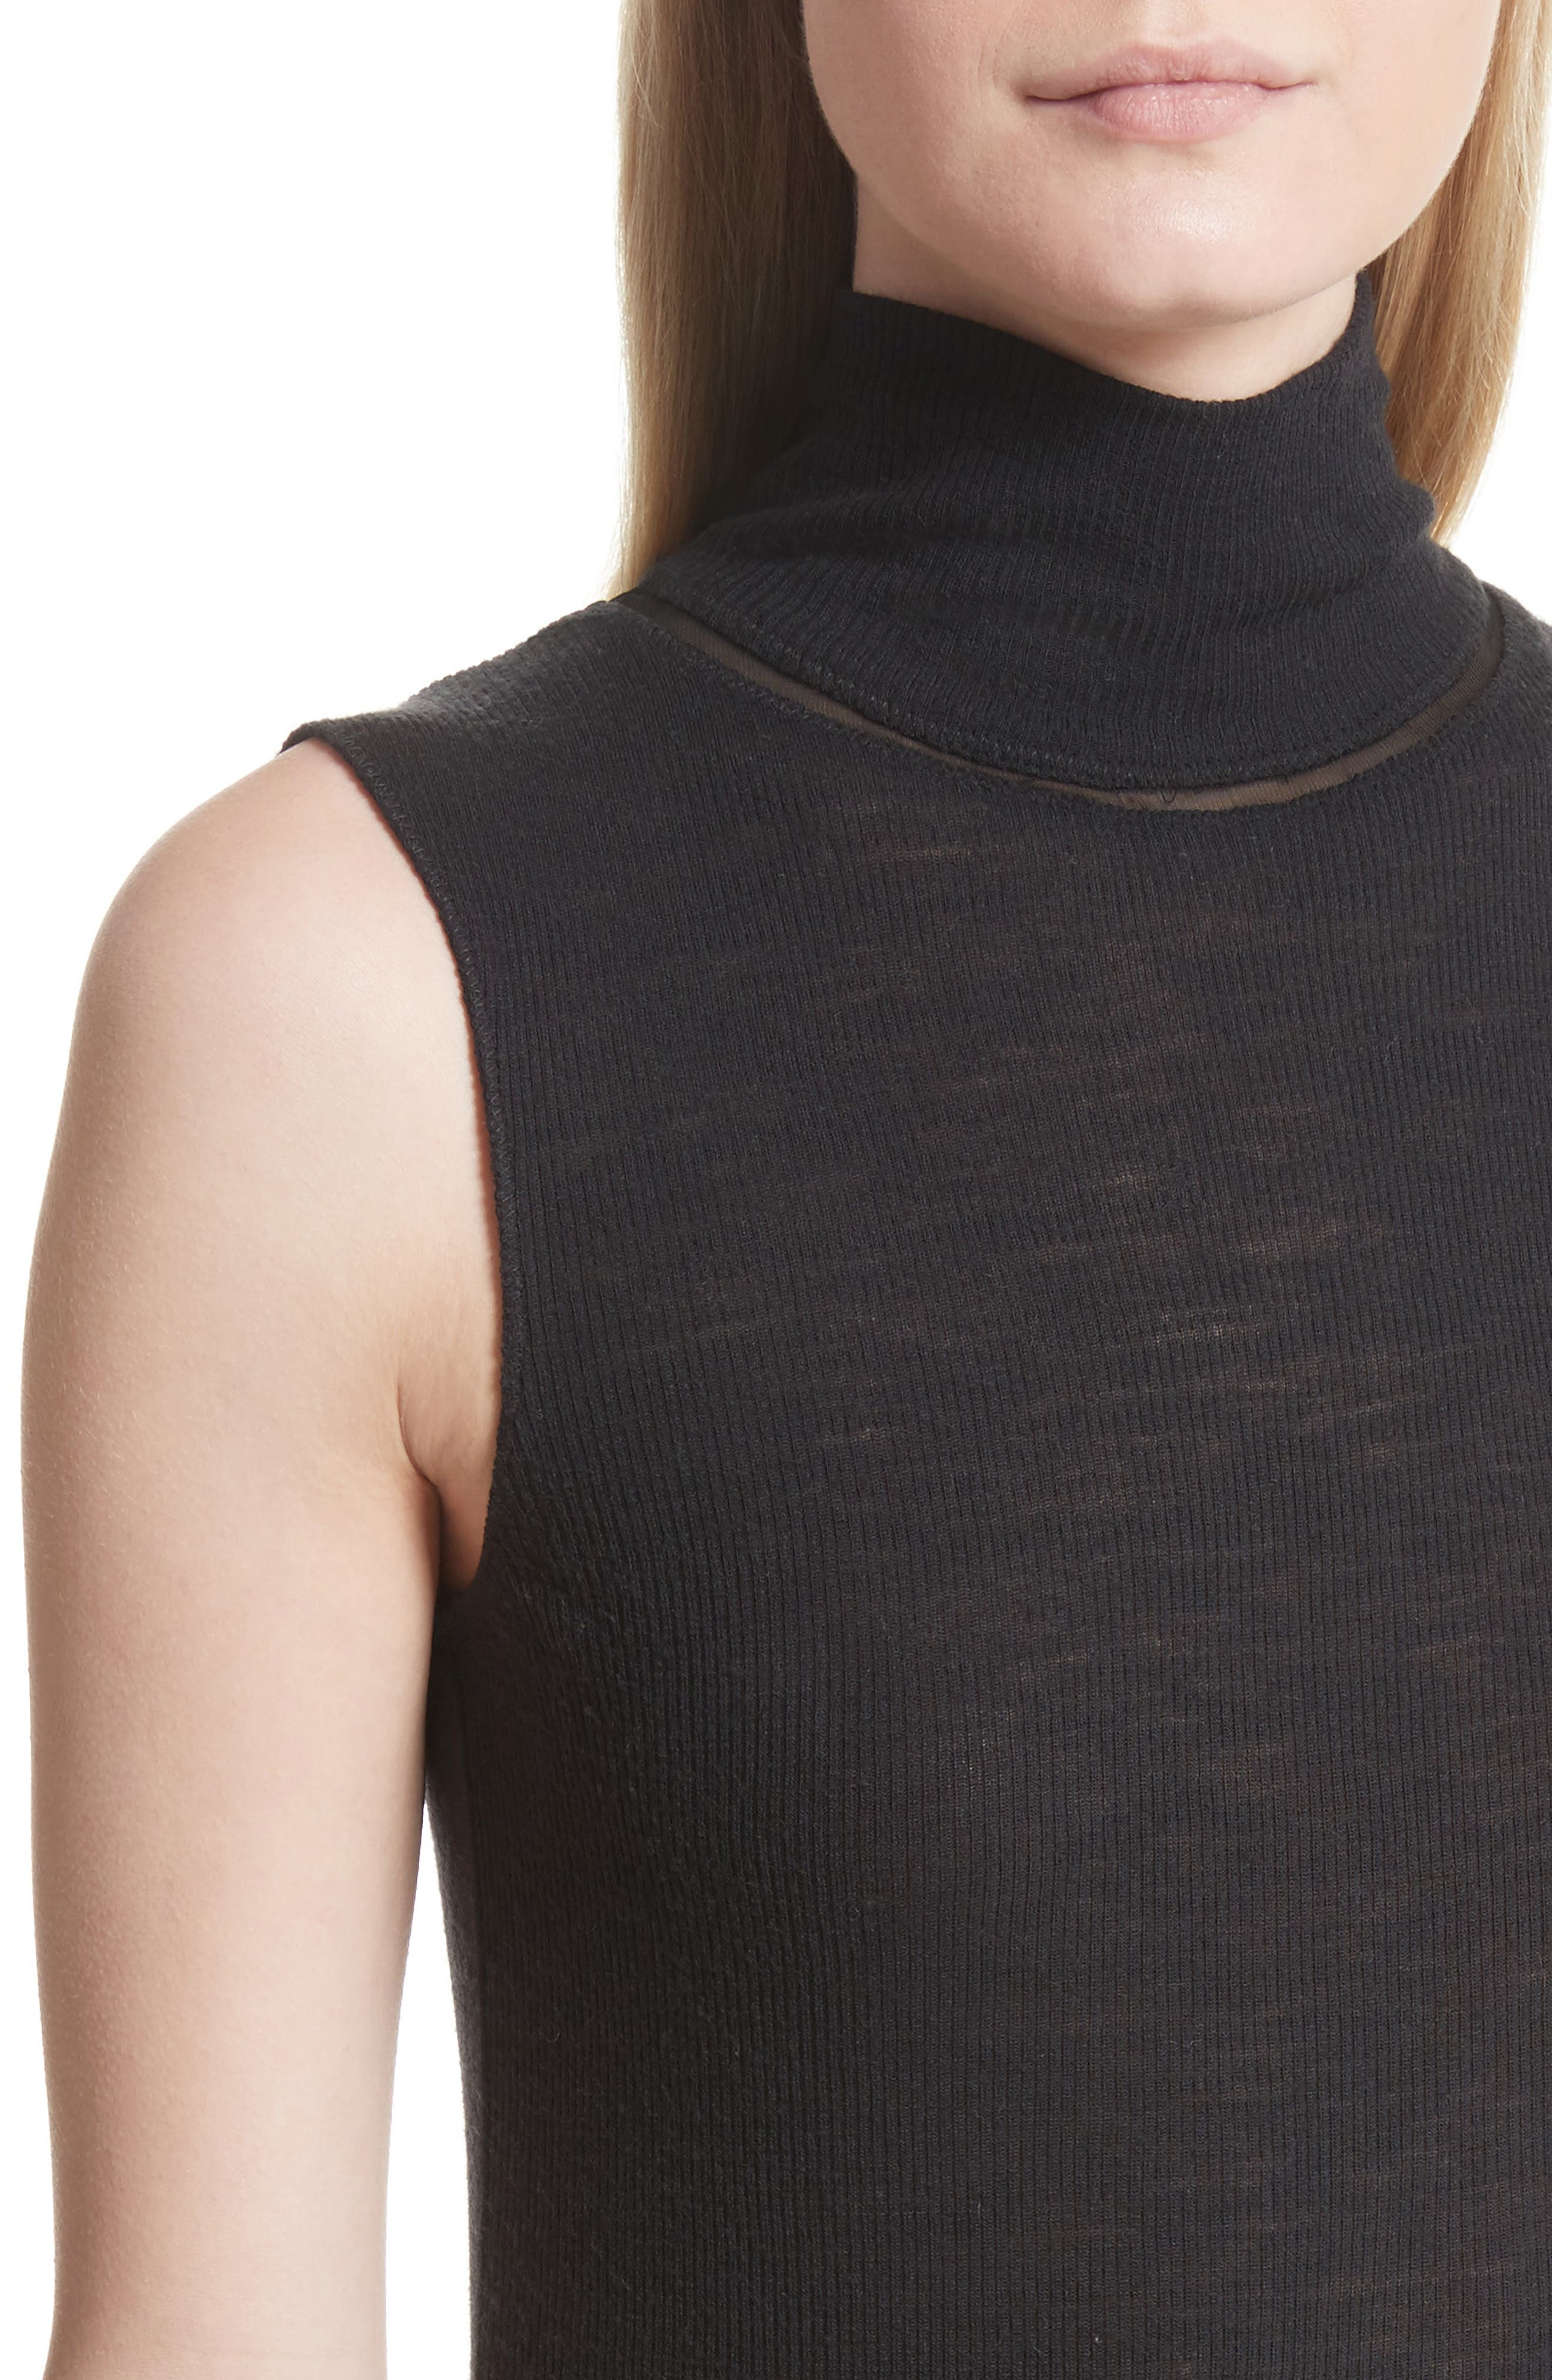 Nova Wool Turtleneck,                             Alternate thumbnail 4, color,                             001